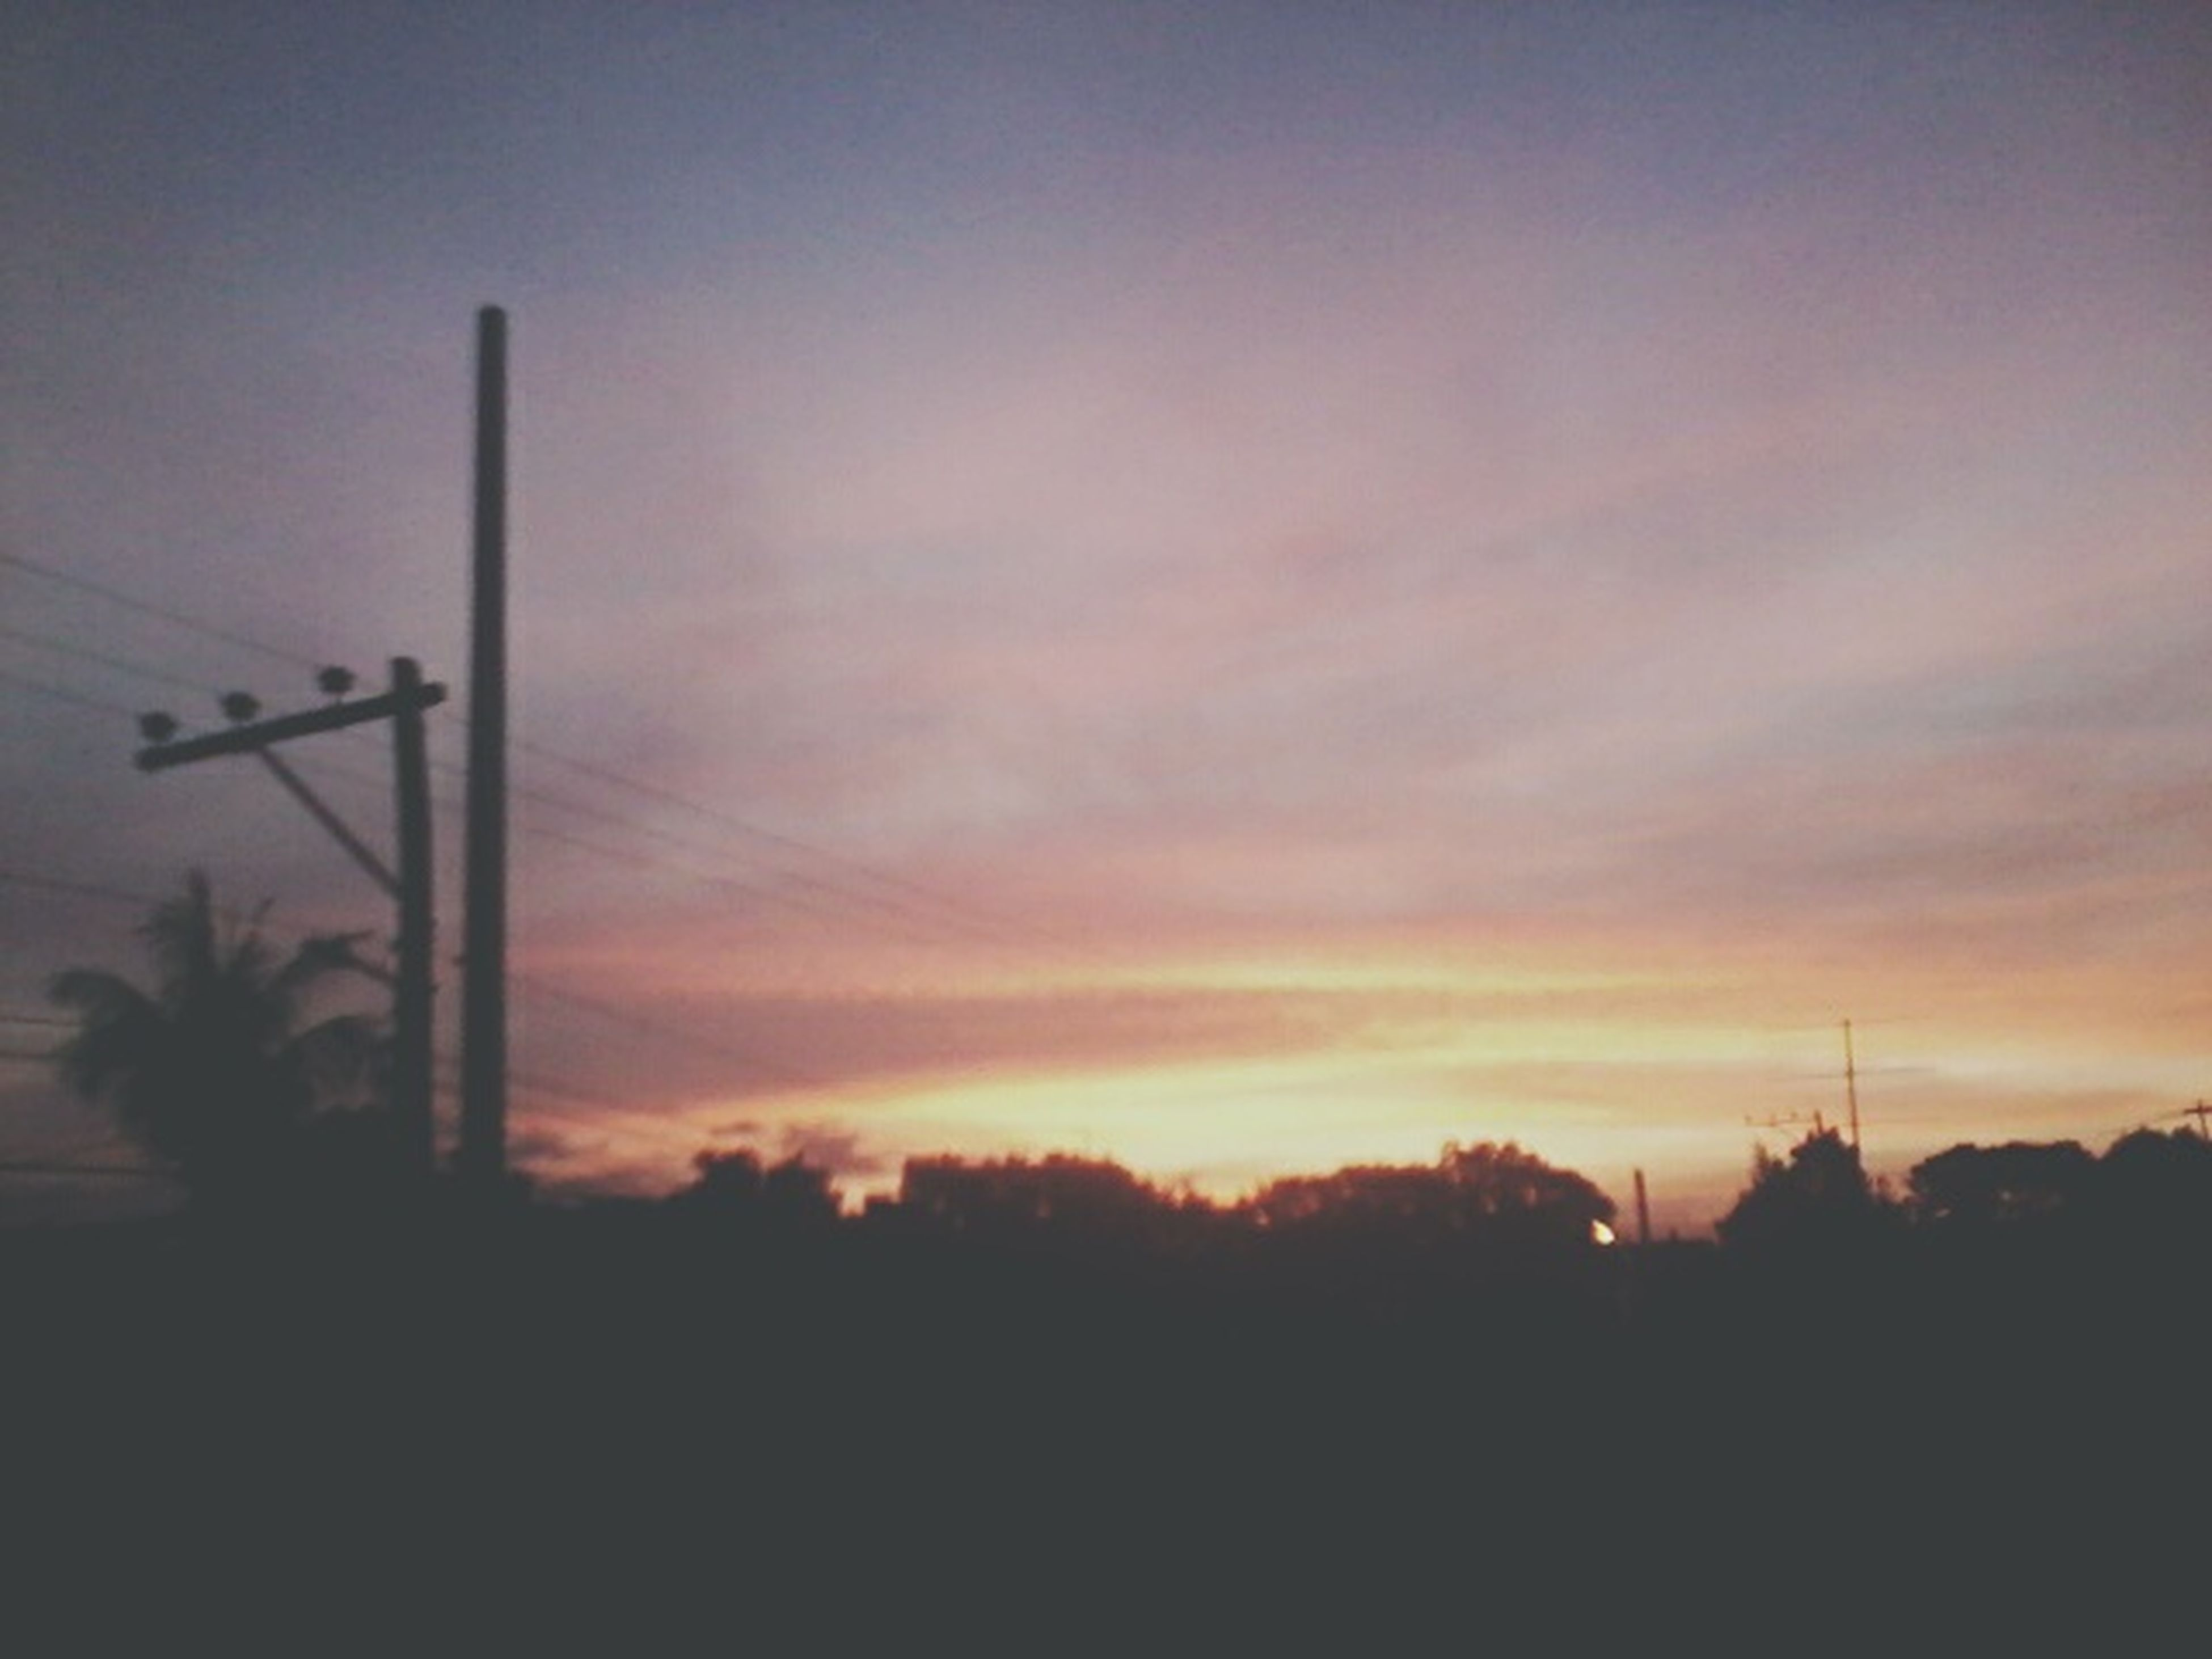 silhouette, sunset, sky, tree, tranquility, beauty in nature, scenics, tranquil scene, electricity pylon, nature, orange color, power line, cloud - sky, low angle view, street light, dusk, electricity, idyllic, connection, no people